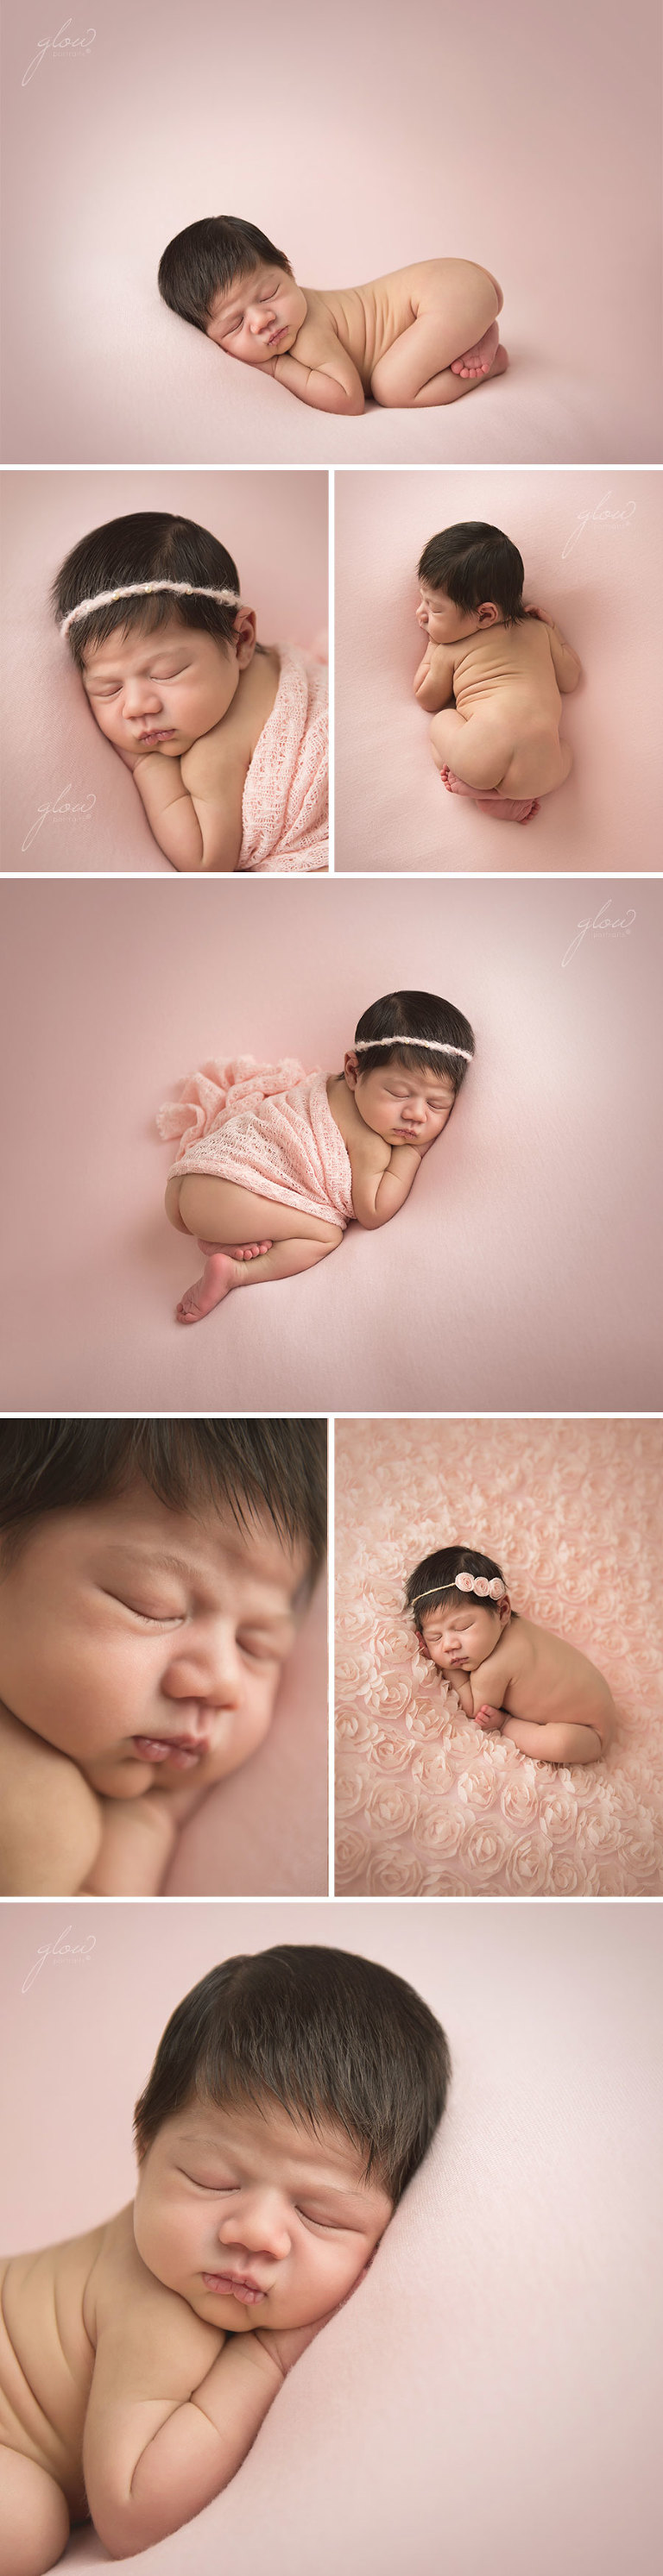 nyc newborn photographer studio